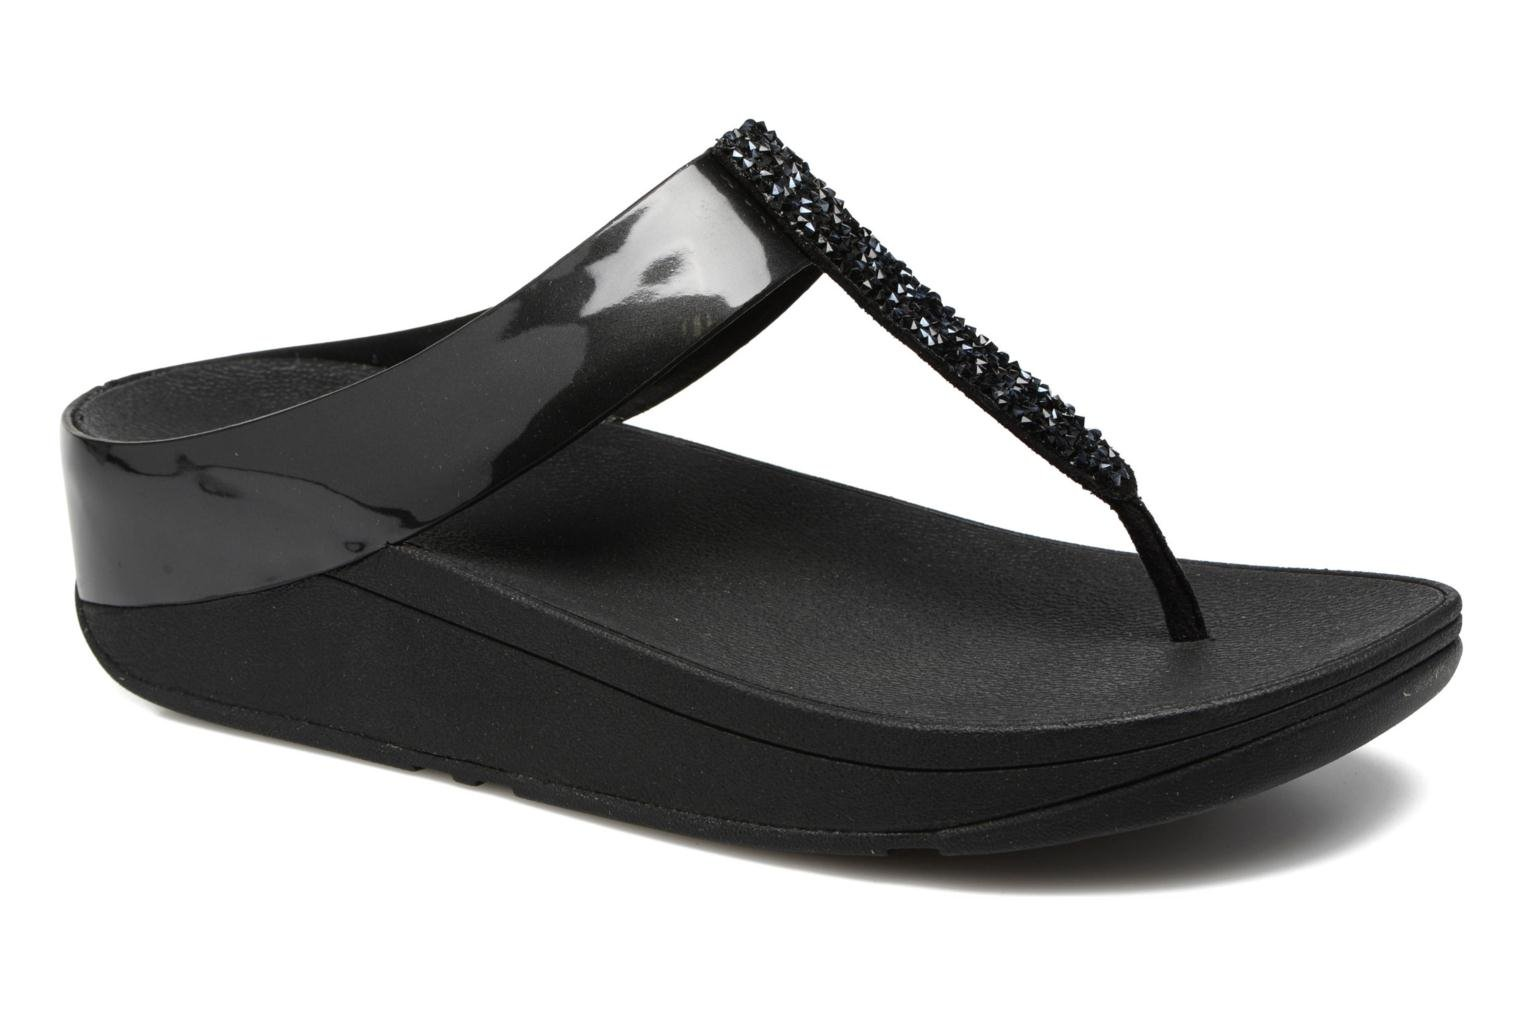 Fino Toe-Post by FitFlop